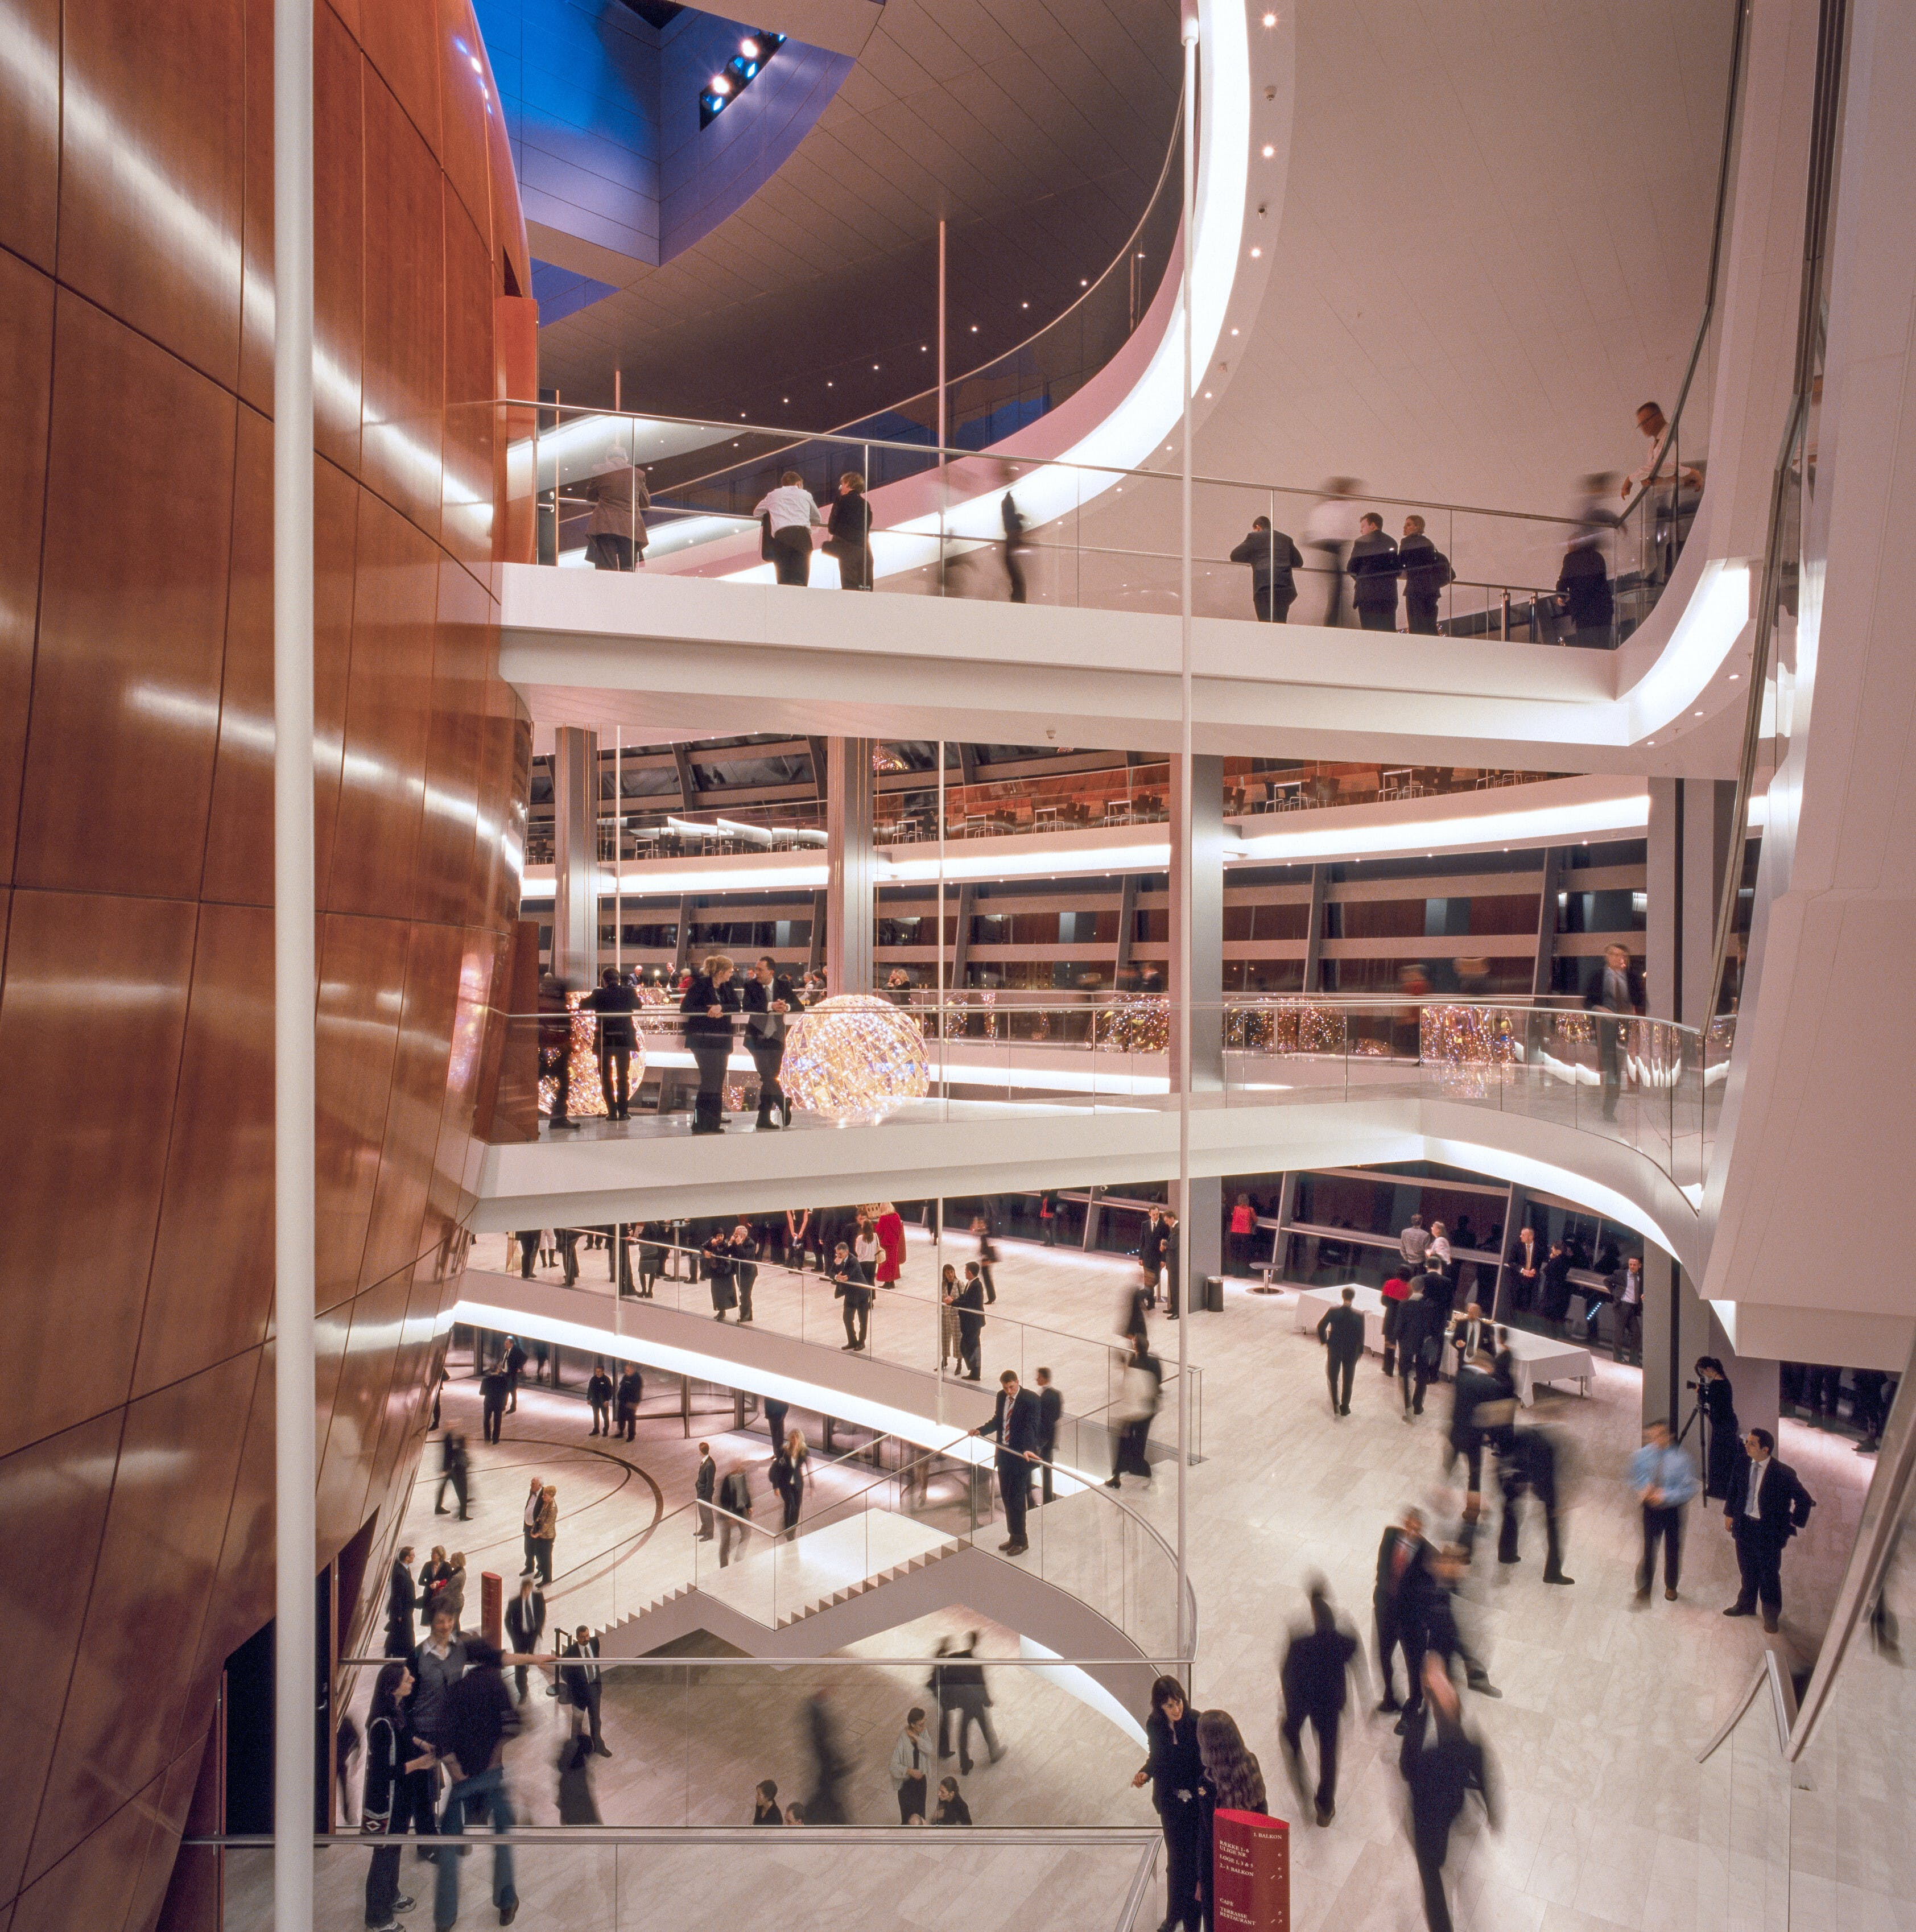 The Royal Danish Opera House  For more information see: Permissions